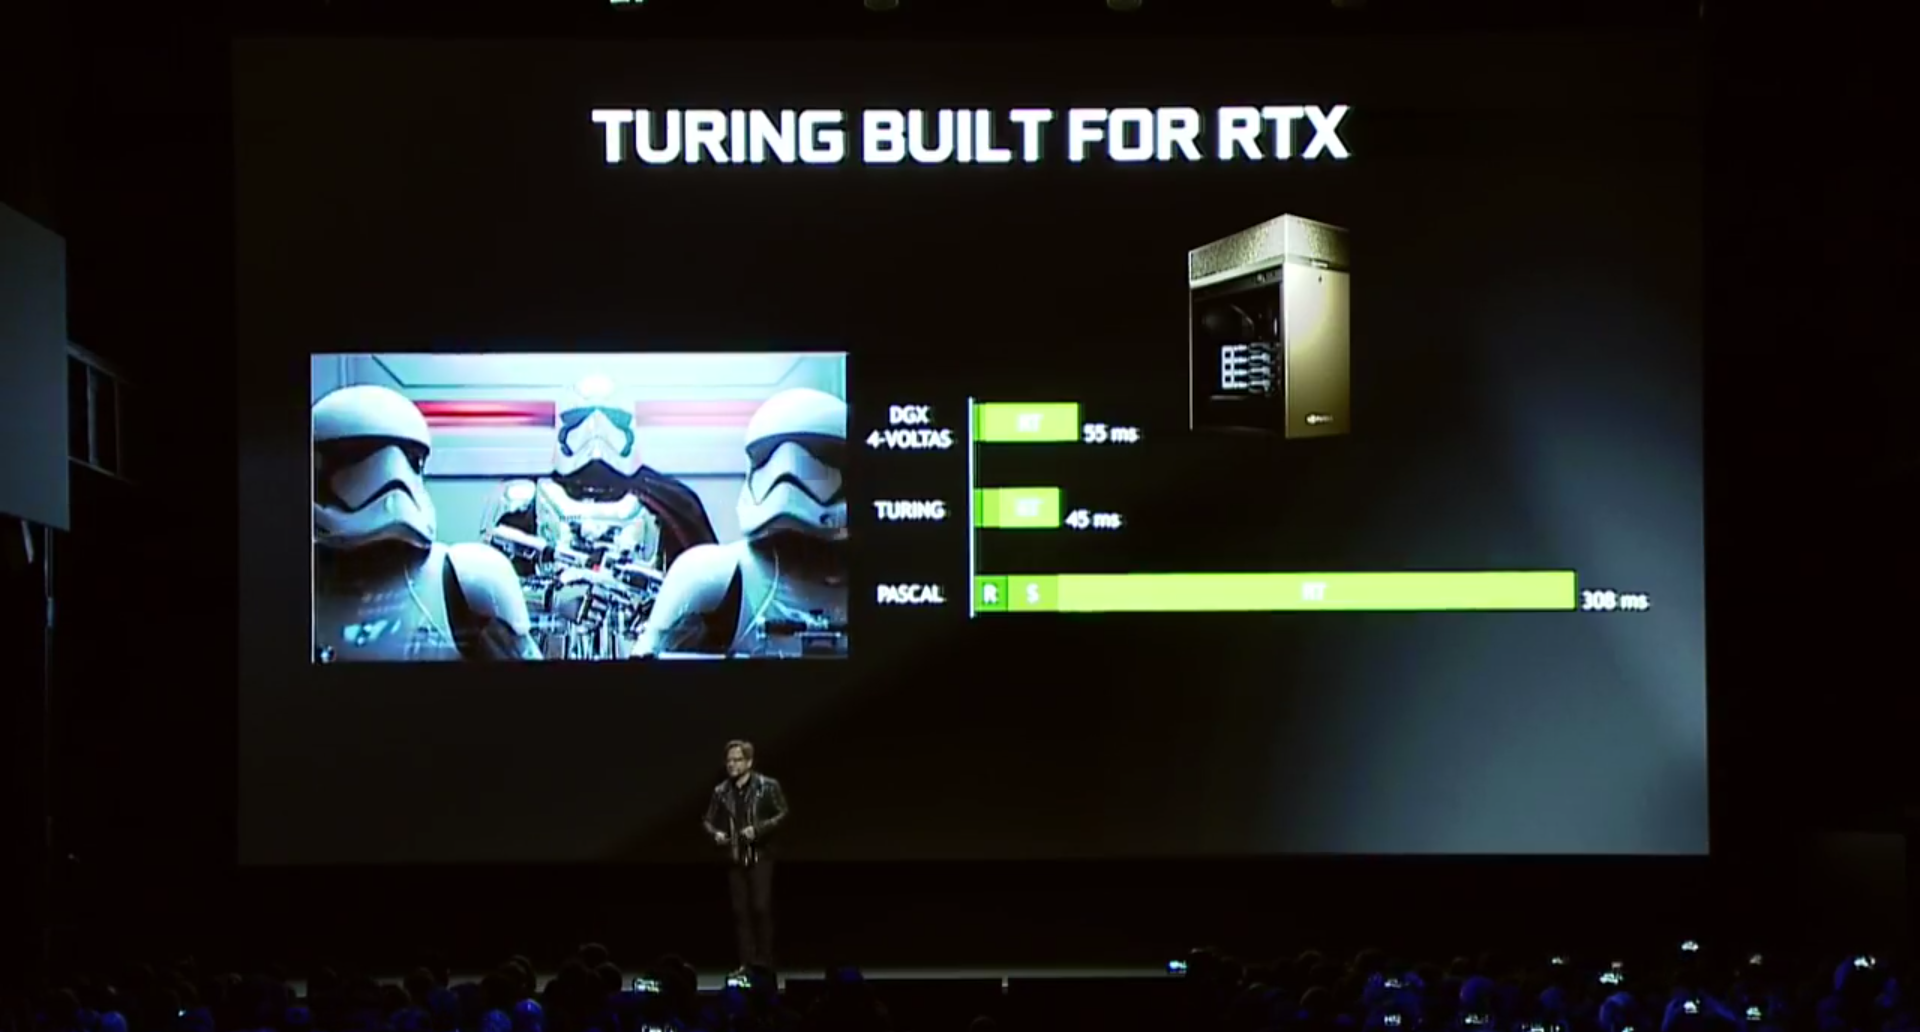 Nvidia reveals $800 GeForce RTX 2080 at Gamescom 2018